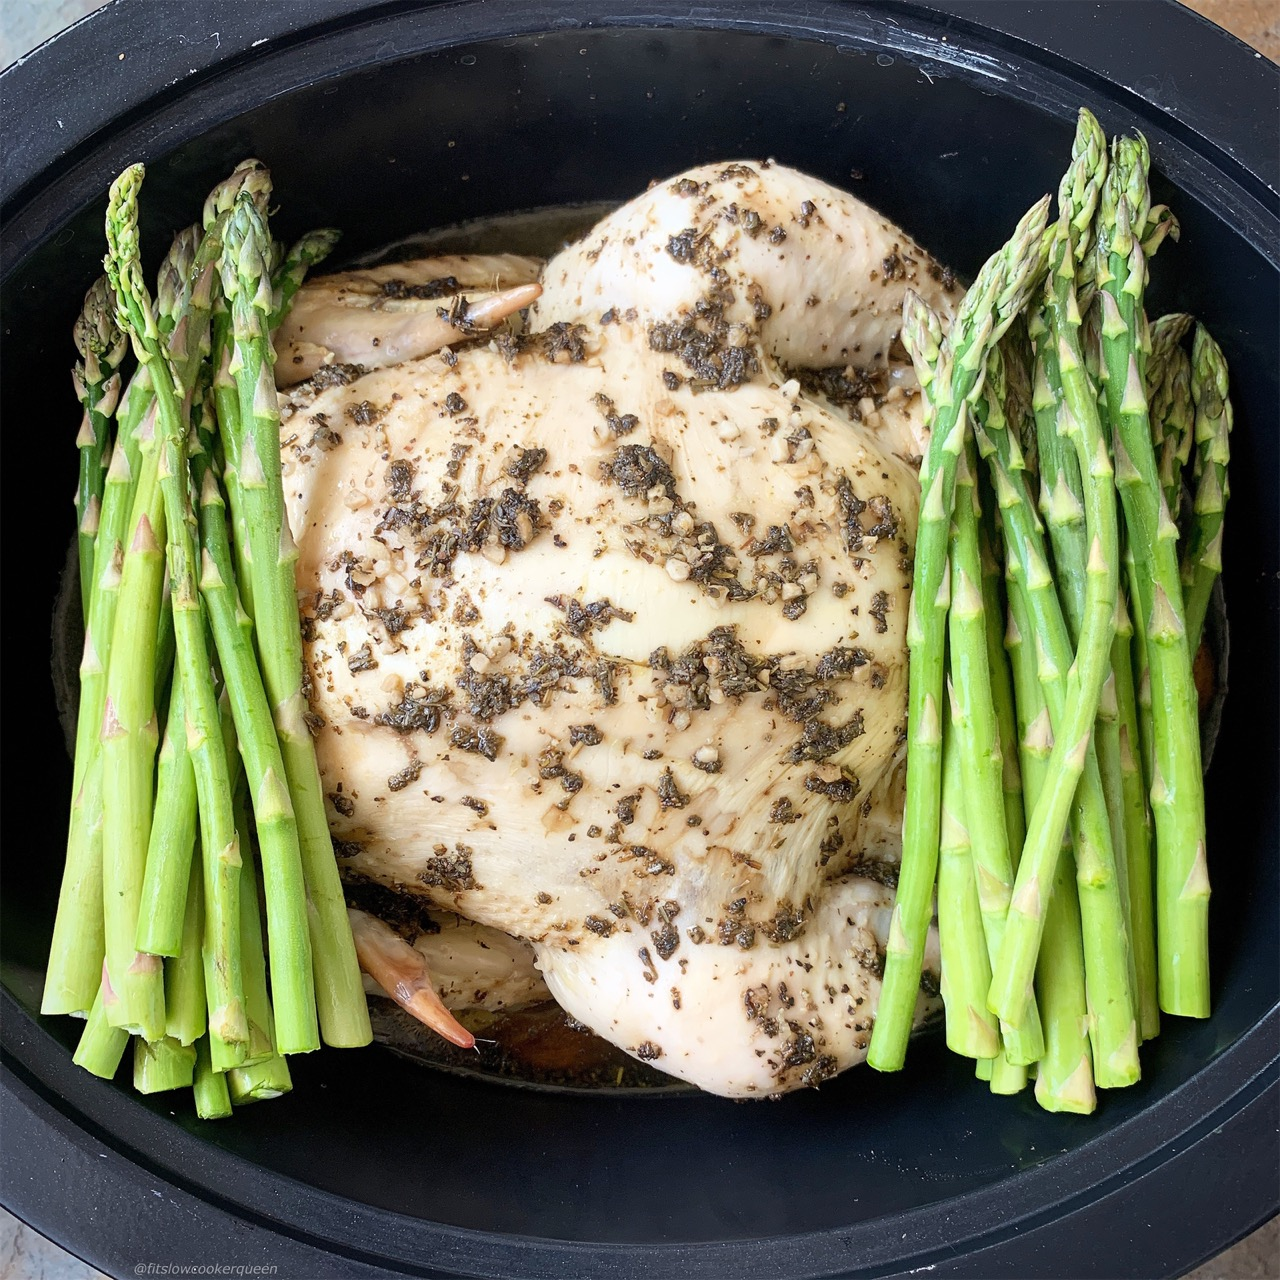 Cooked whole chicken in the slow cooker with asparagus added.